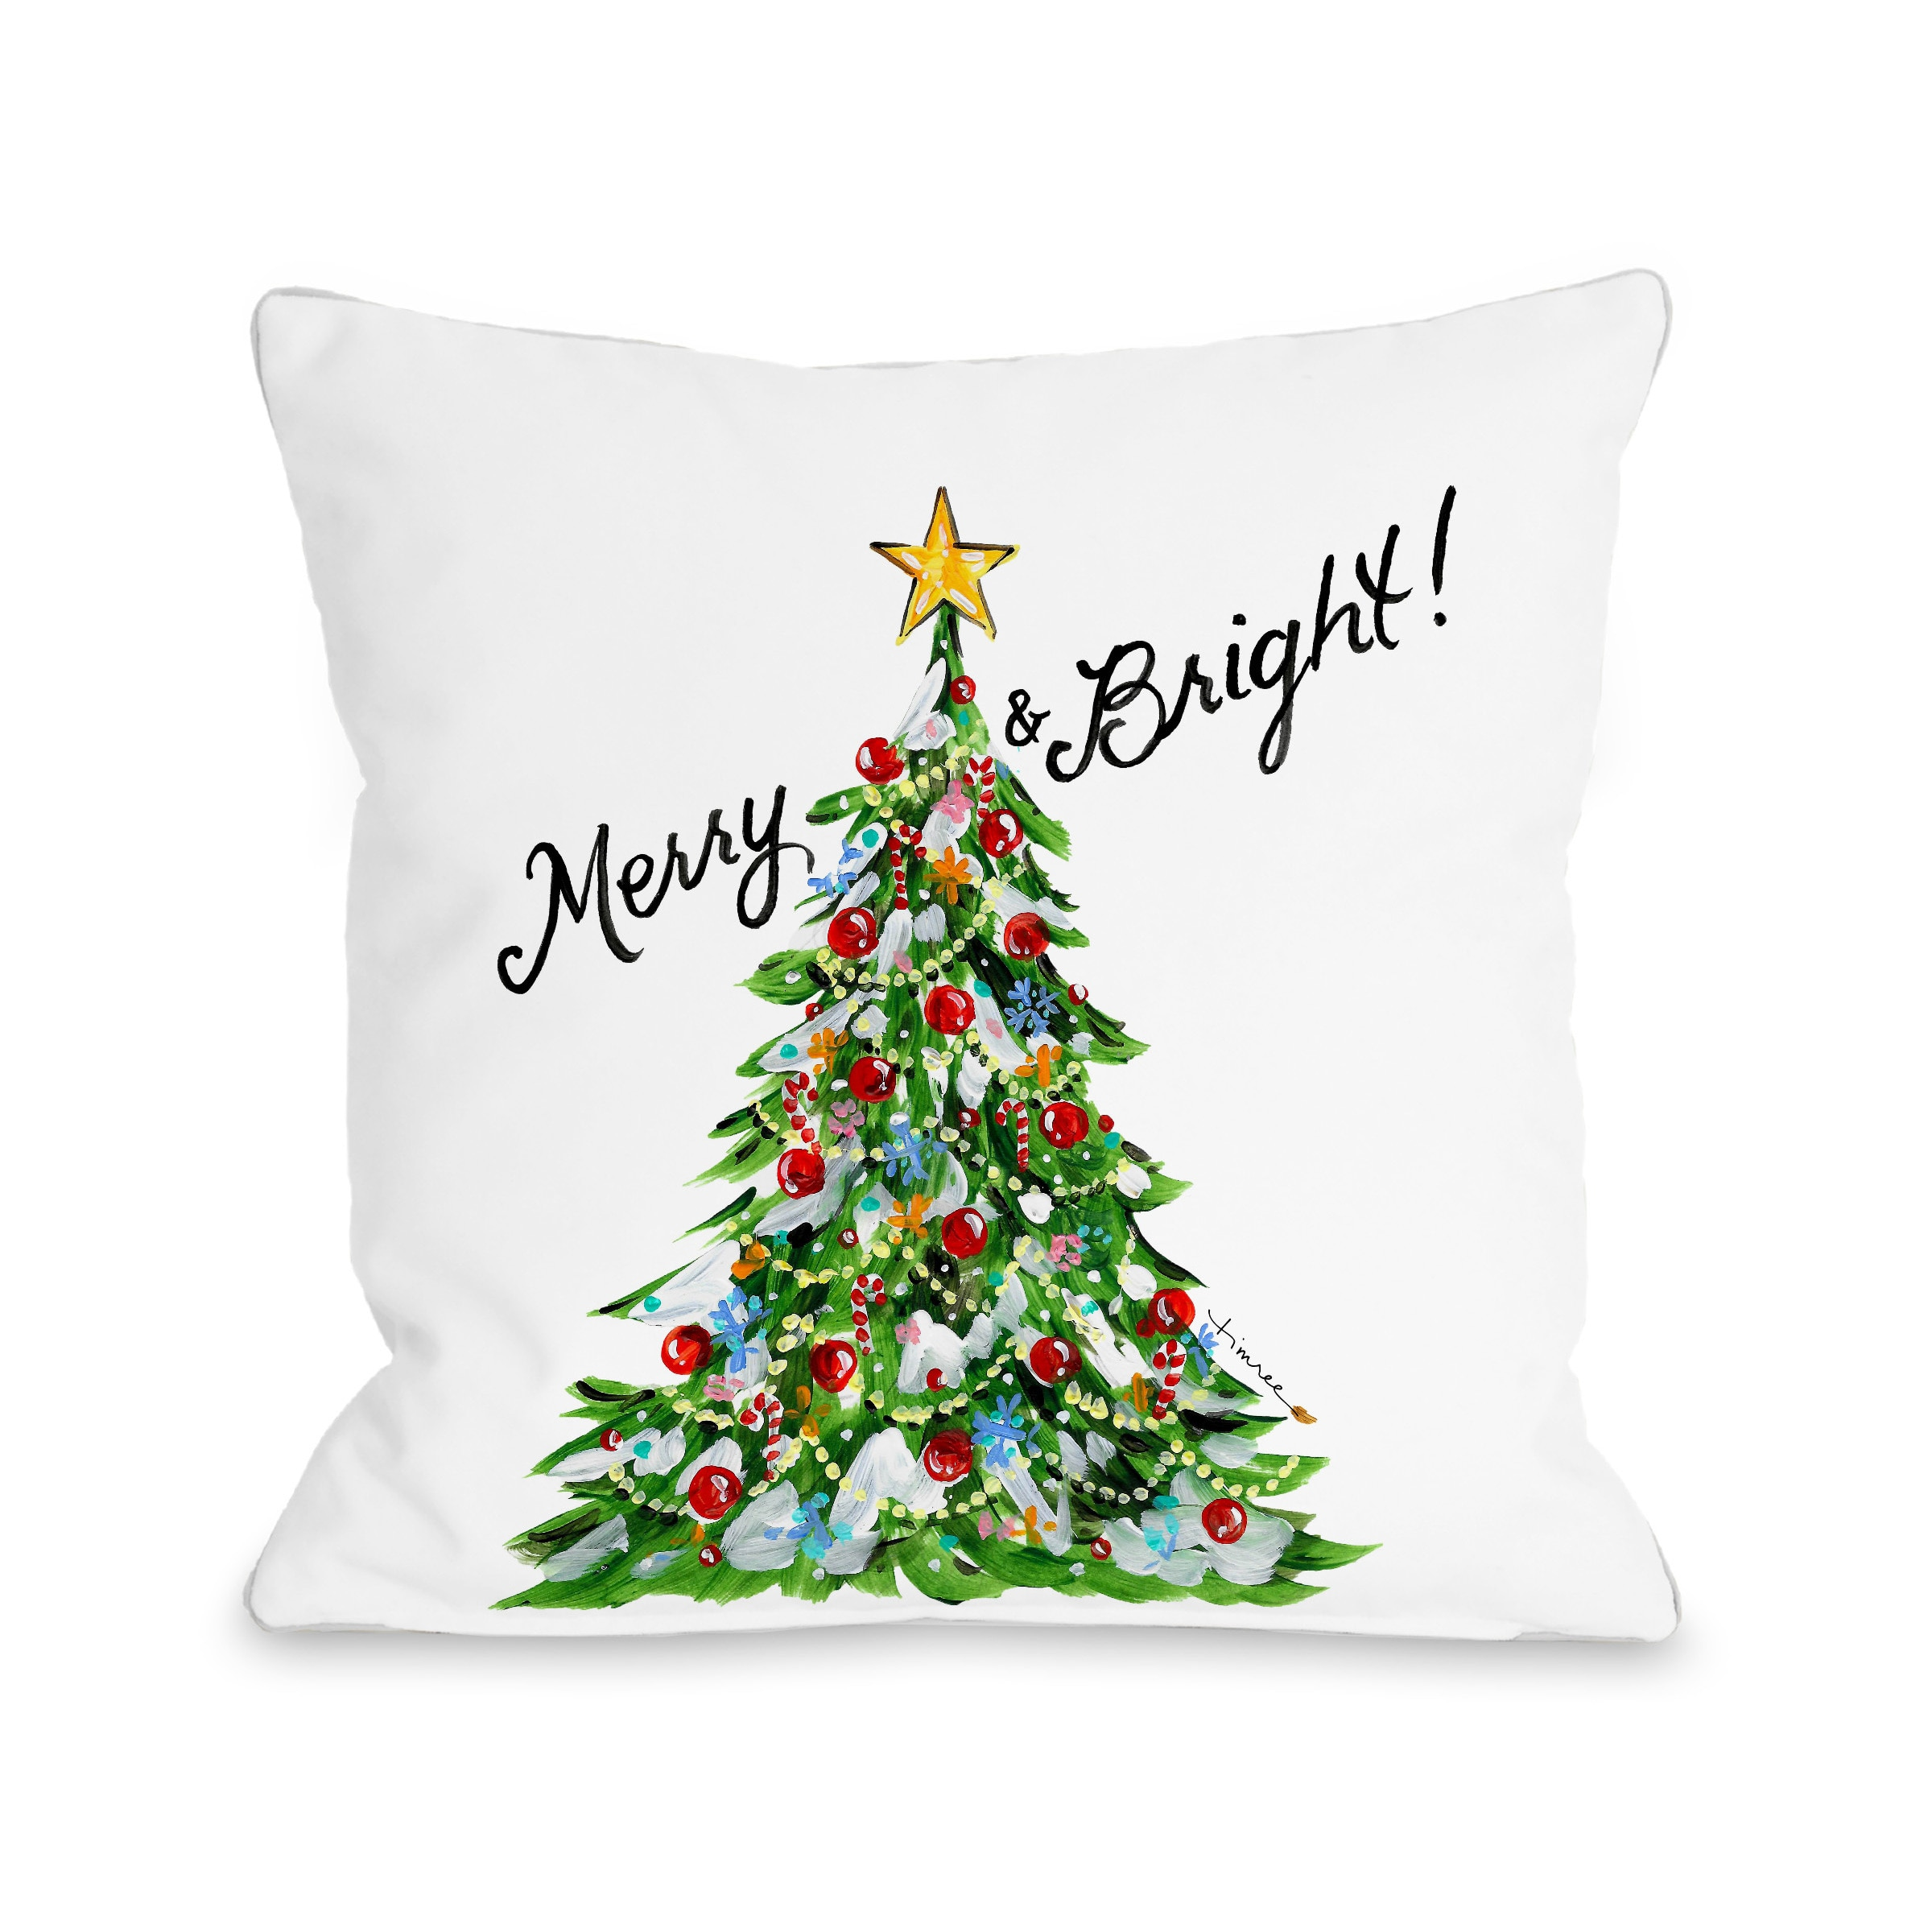 Merry & Bright Christmas Tree - Multi 18x18 Pillow by Timree Gold